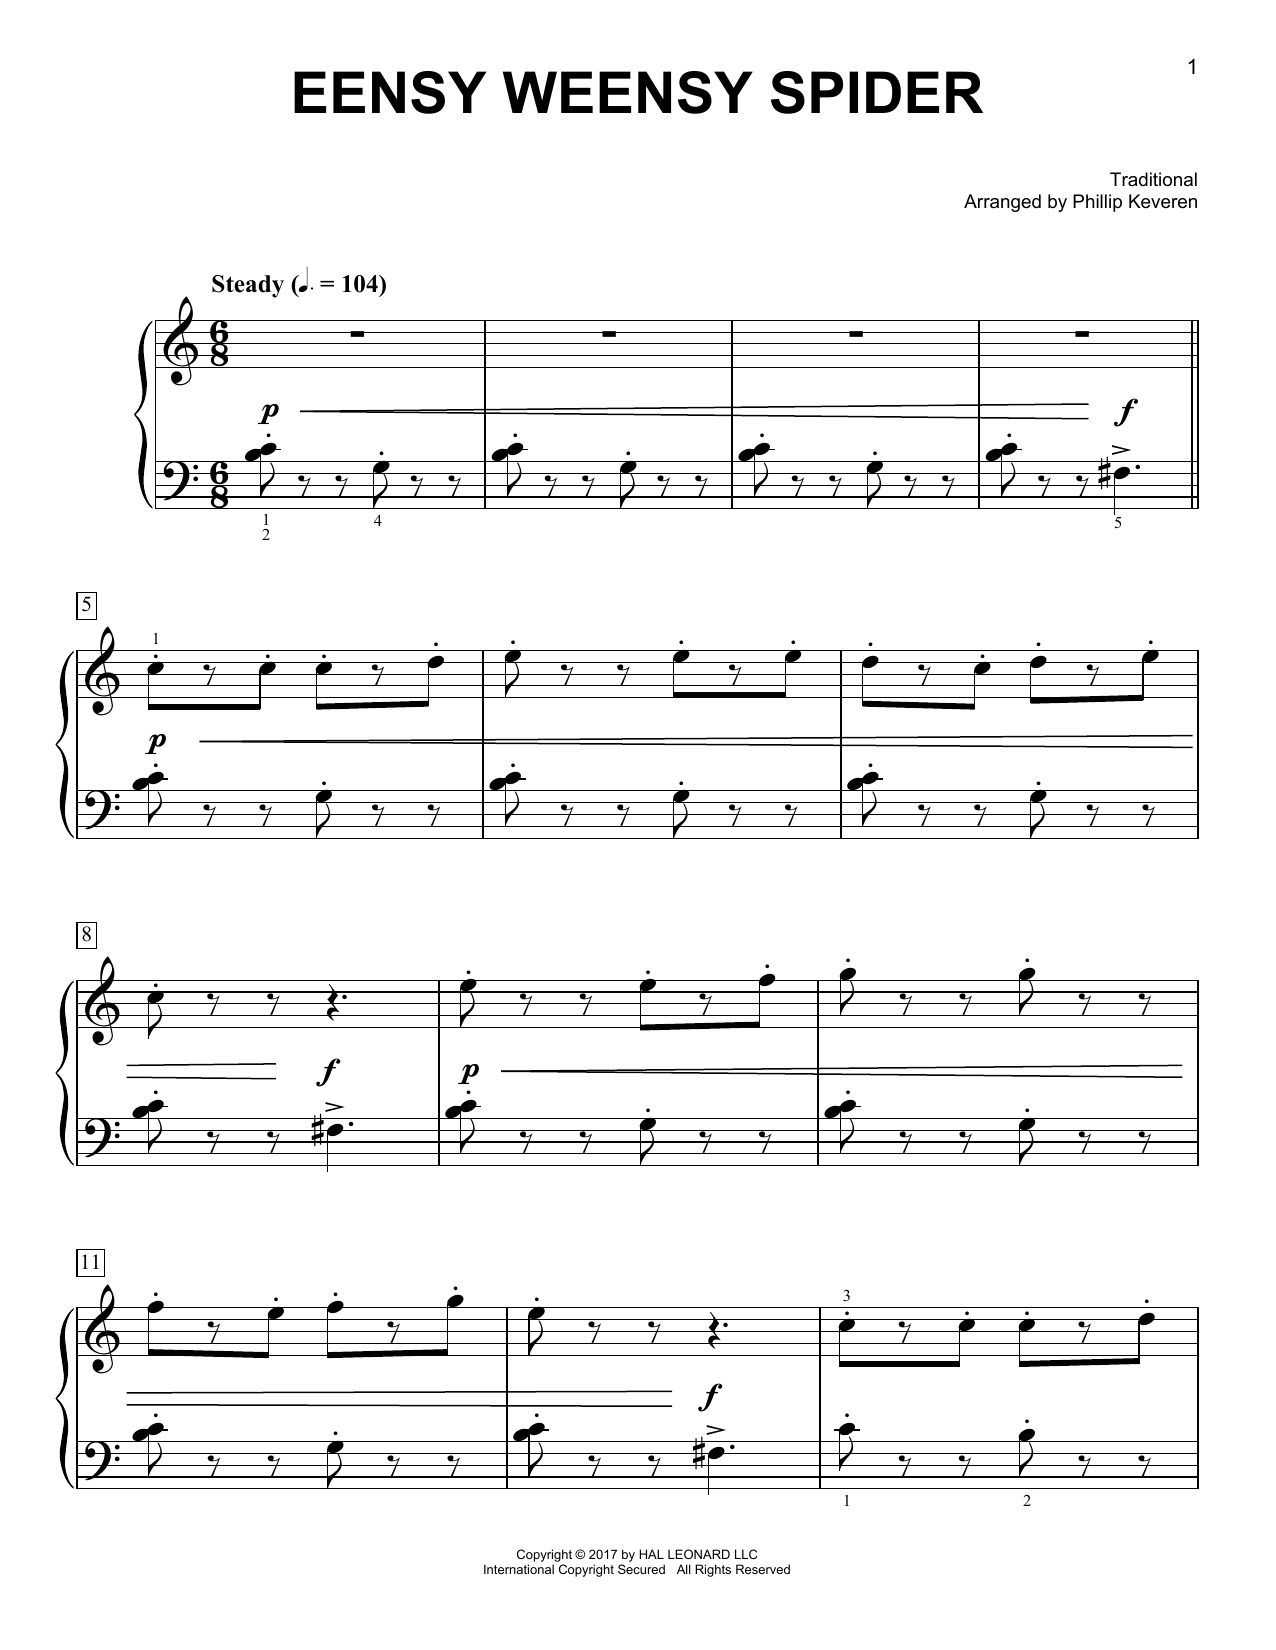 Traditional Eensy Weensy Spider [Classical version] (arr. Phillip Keveren) sheet music notes and chords. Download Printable PDF.